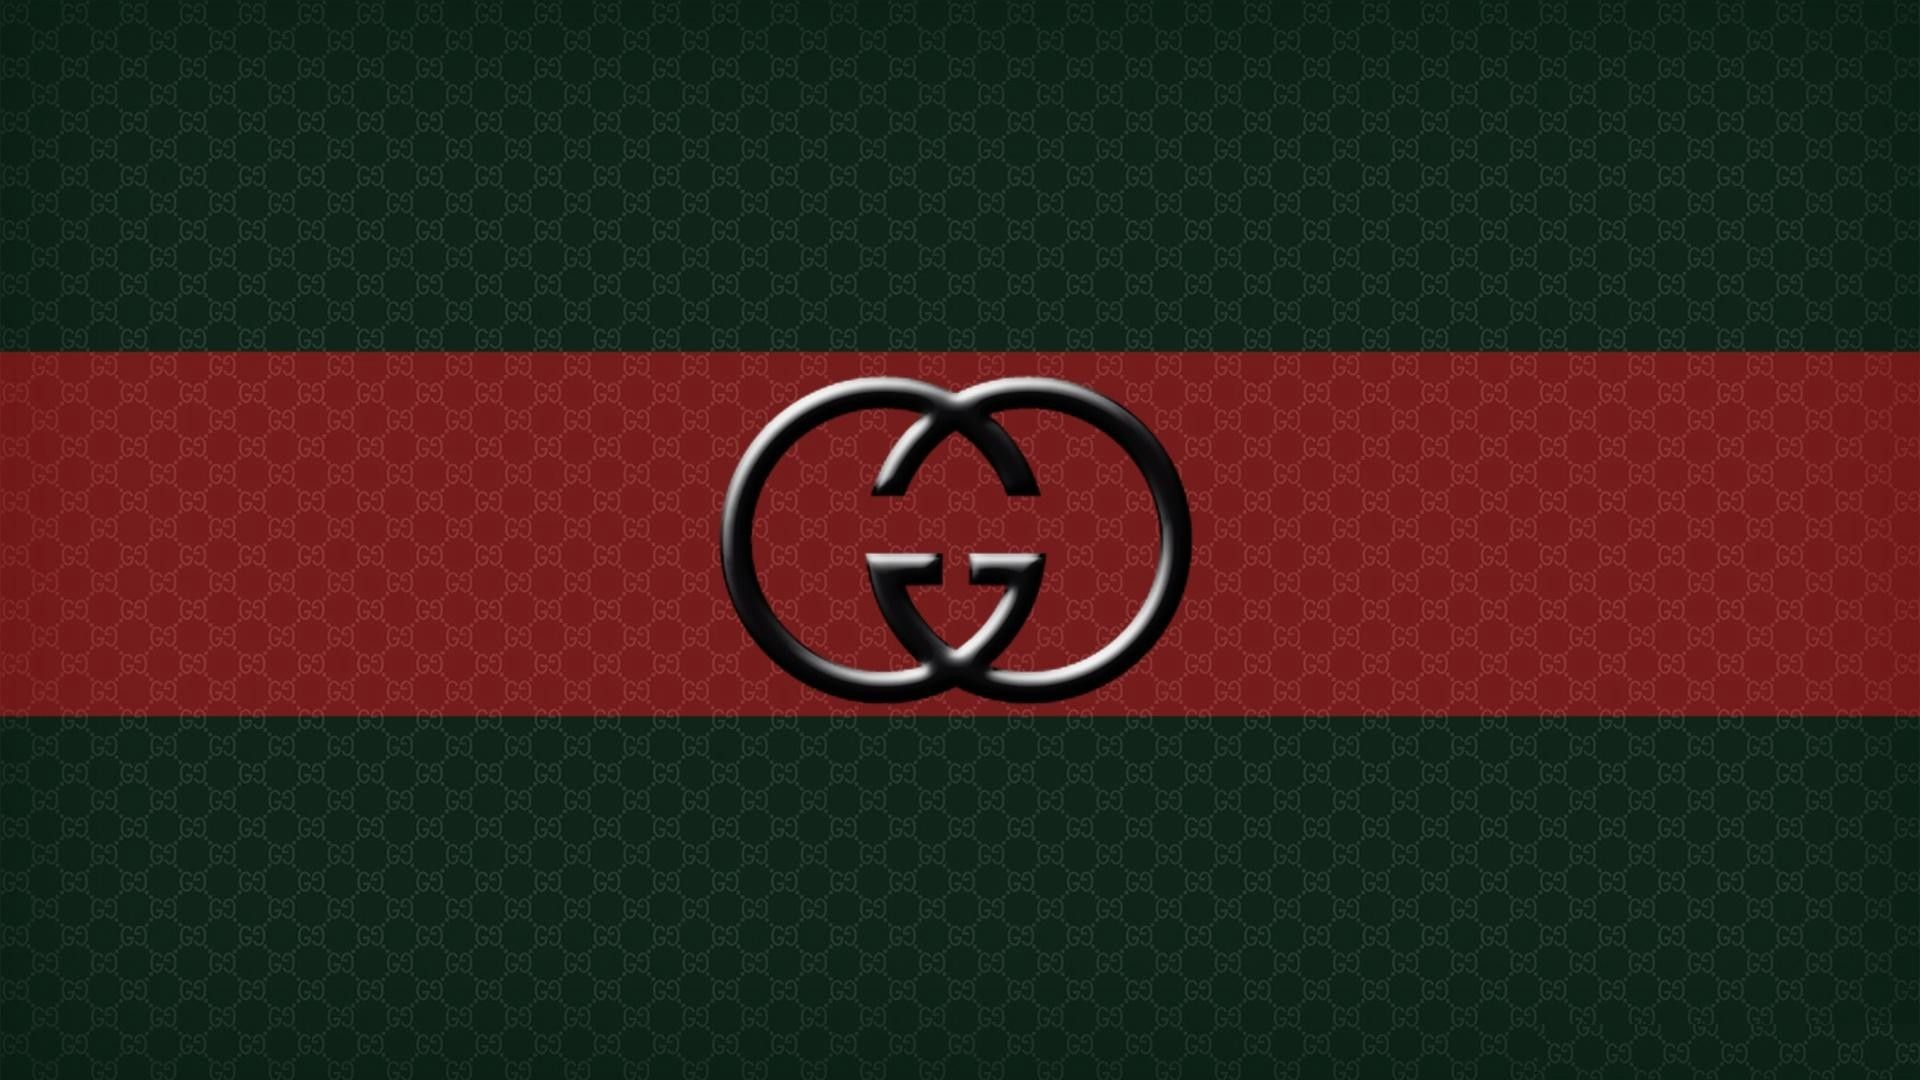 1920x1080 Pictures images gucci logo wallpapers HD Supreme in 1920x1080